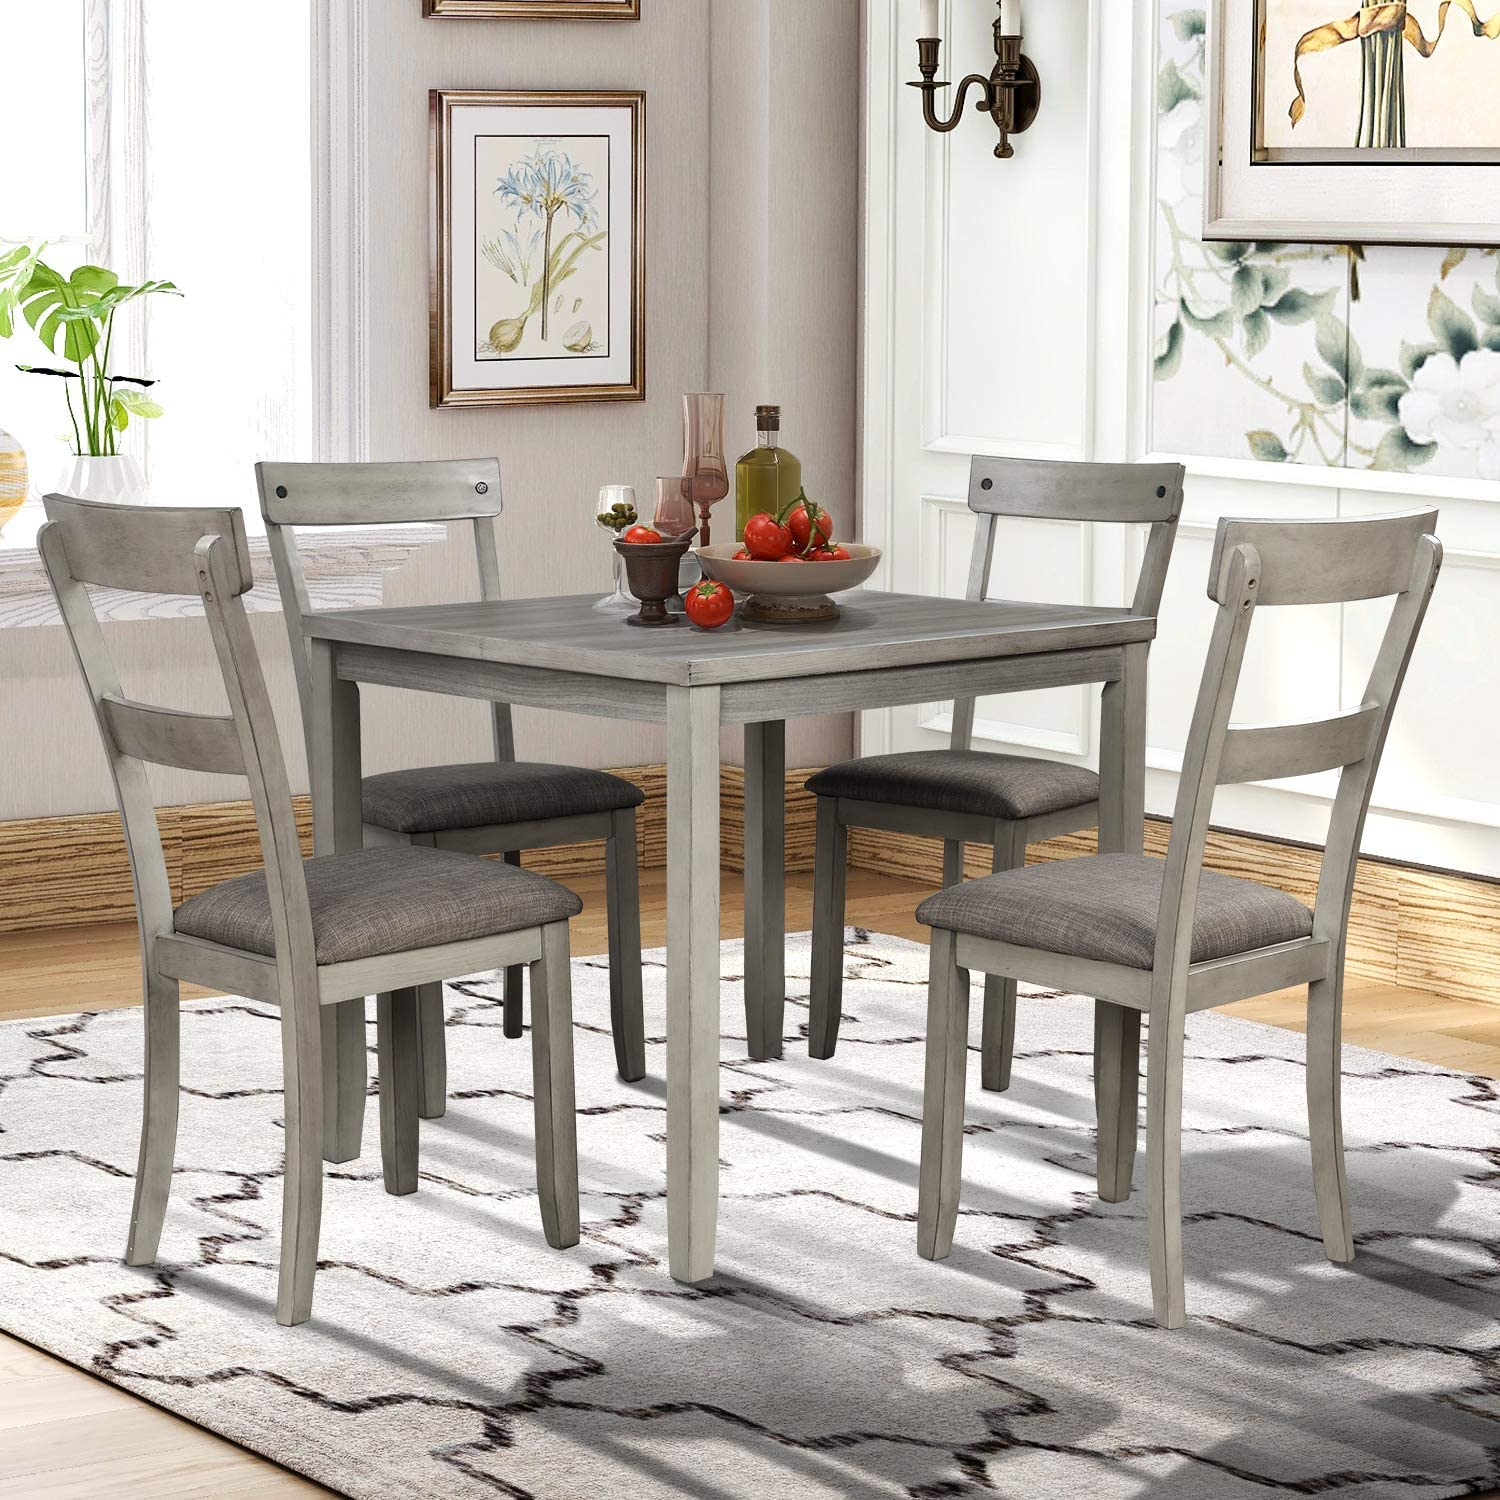 9 Piece Dining Table Set Industrial Wooden Kitchen Table and 9 Chairs for  Kitchen, Dining Room Light Grey